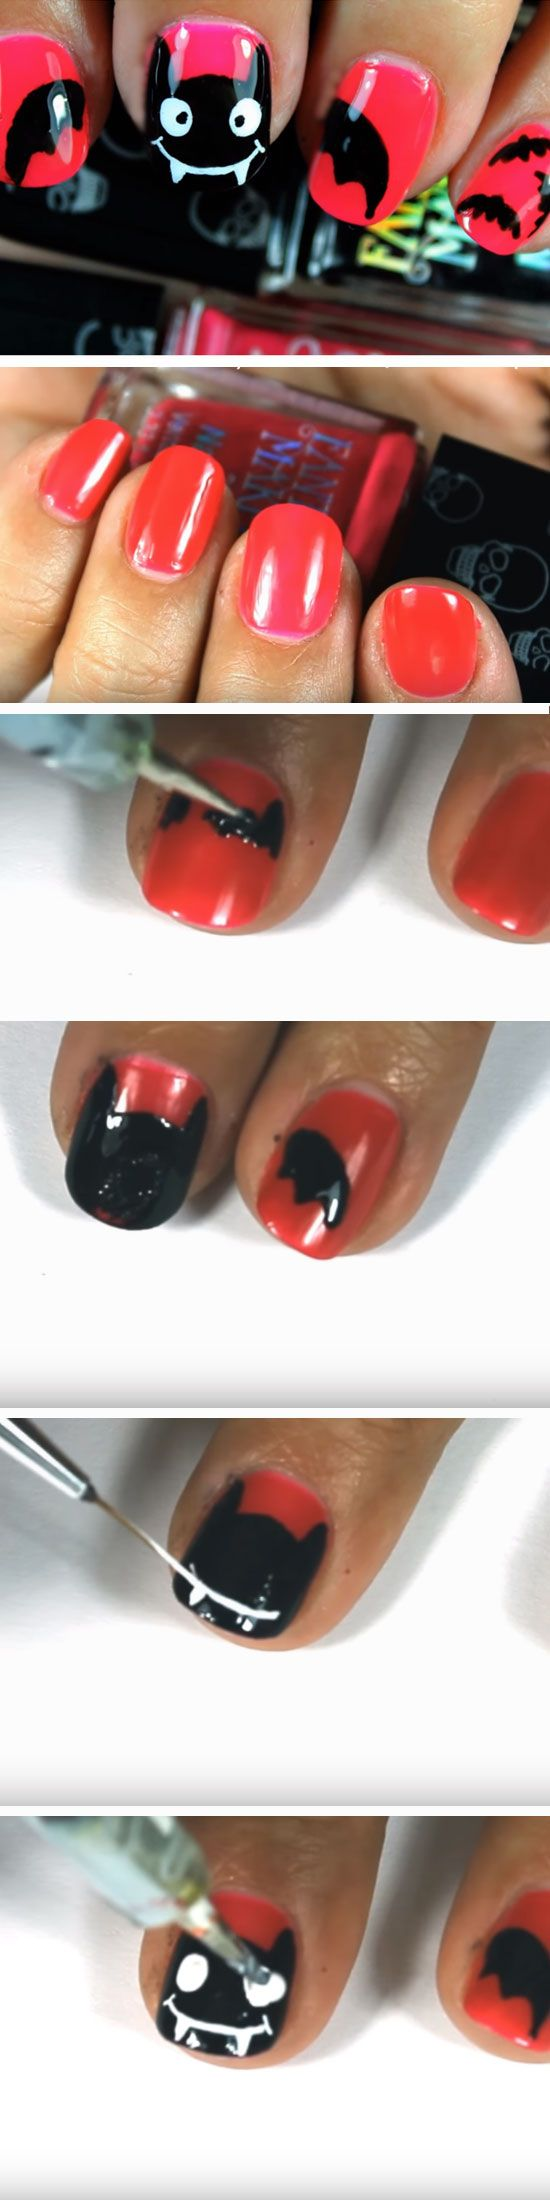 797 best Cool nail art images on Pinterest | Cute nails, Nail ...